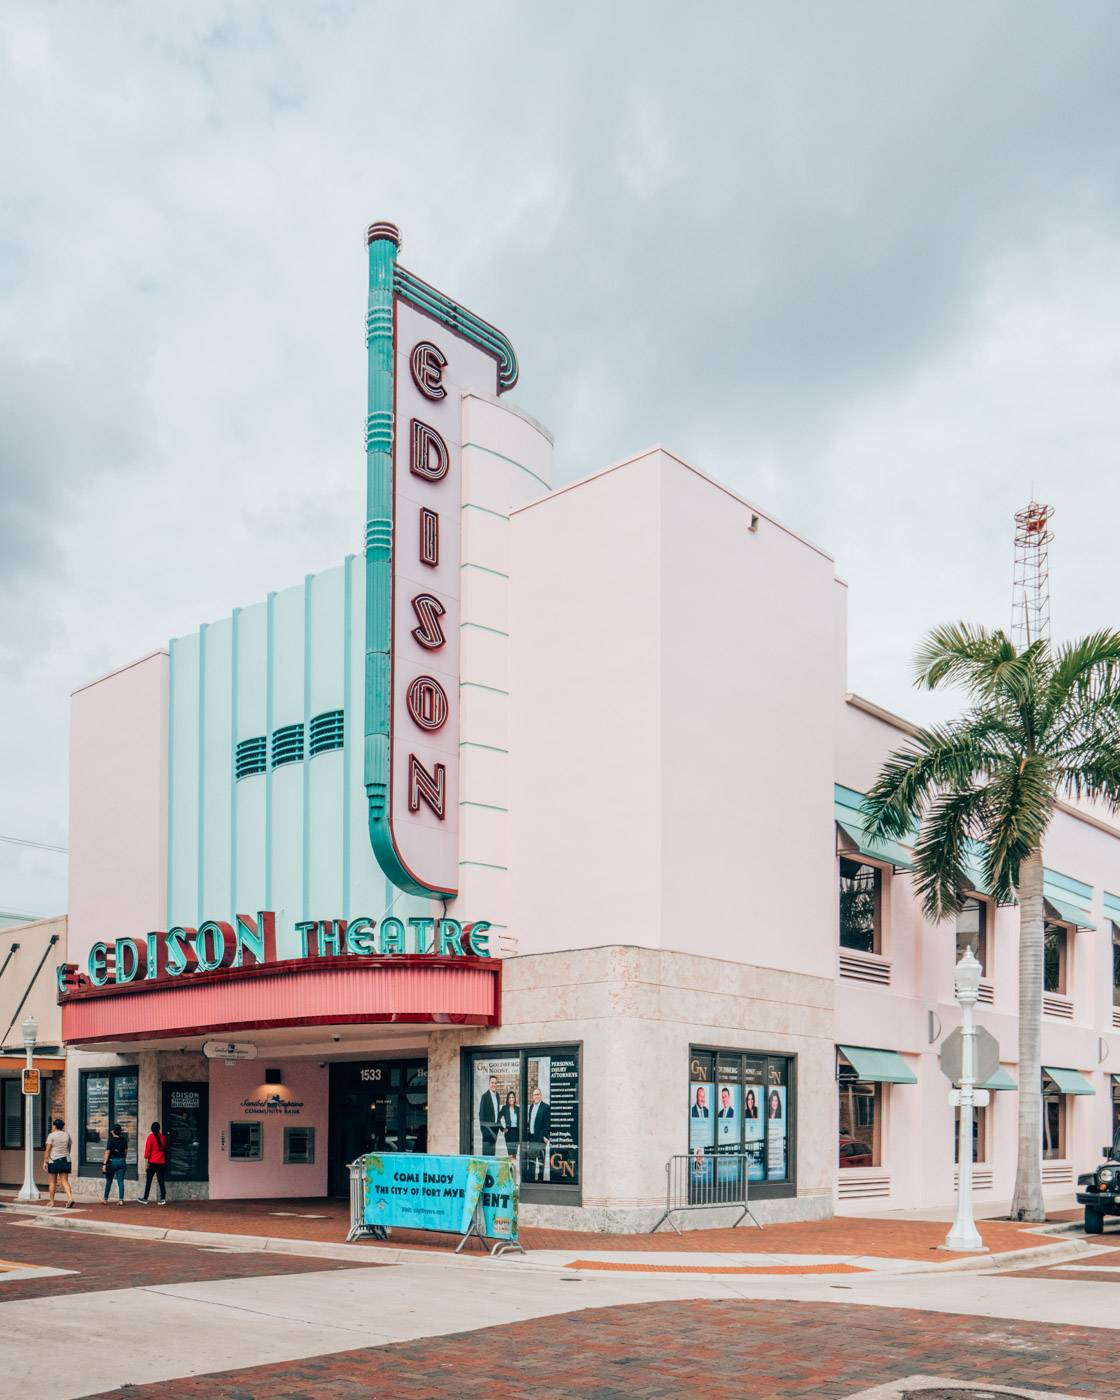 Exploring downtown Fort Myers including the Edison theatre is one of the best things to do